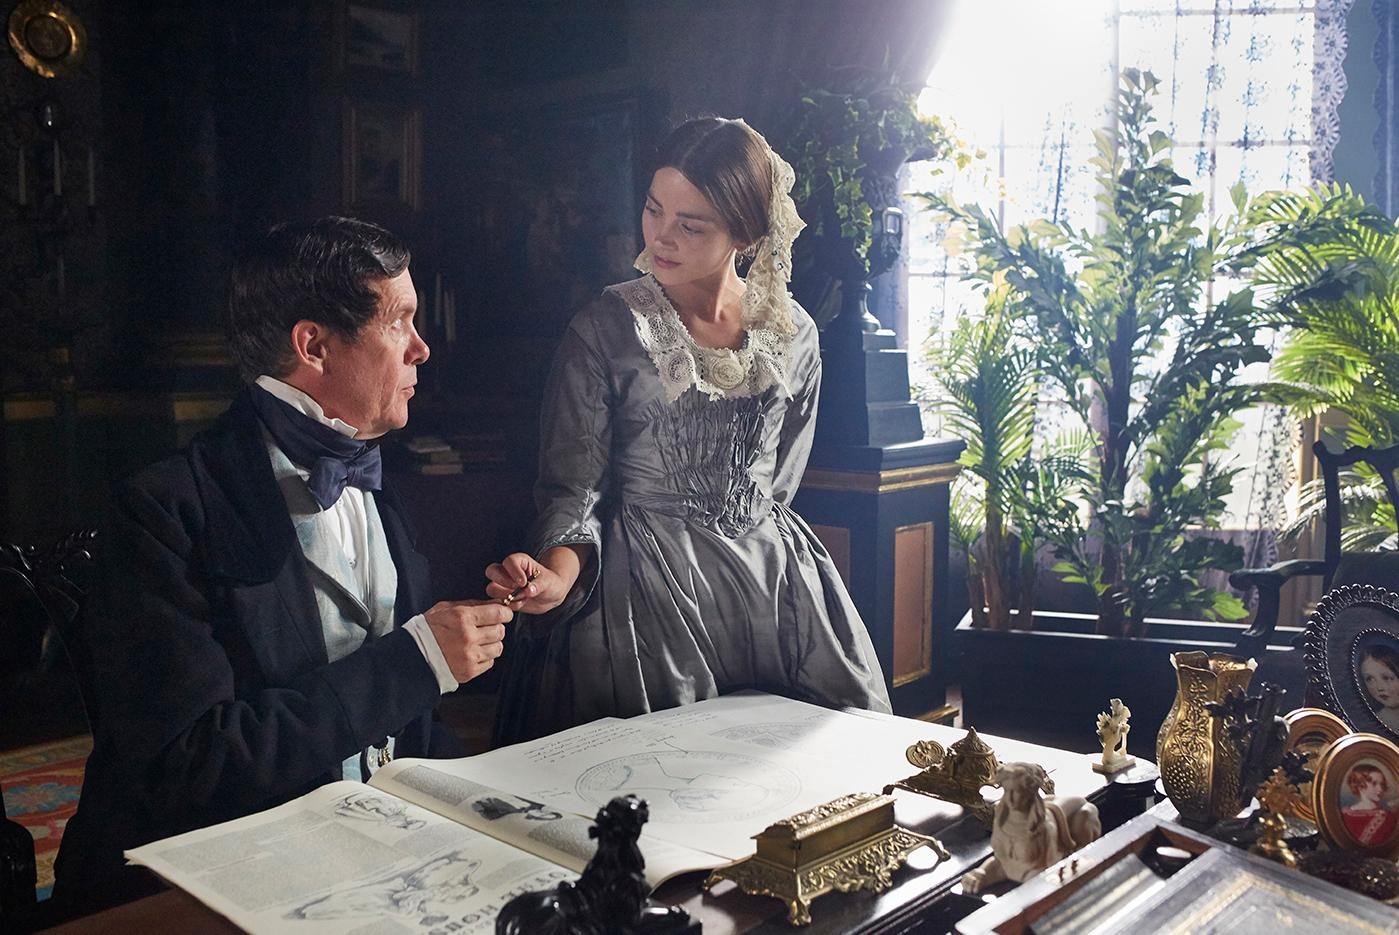 King Leopold and Queen Victoria, season 3 of Victoria. Photo: Justin Slee/ITV Plc for MASTERPIECE